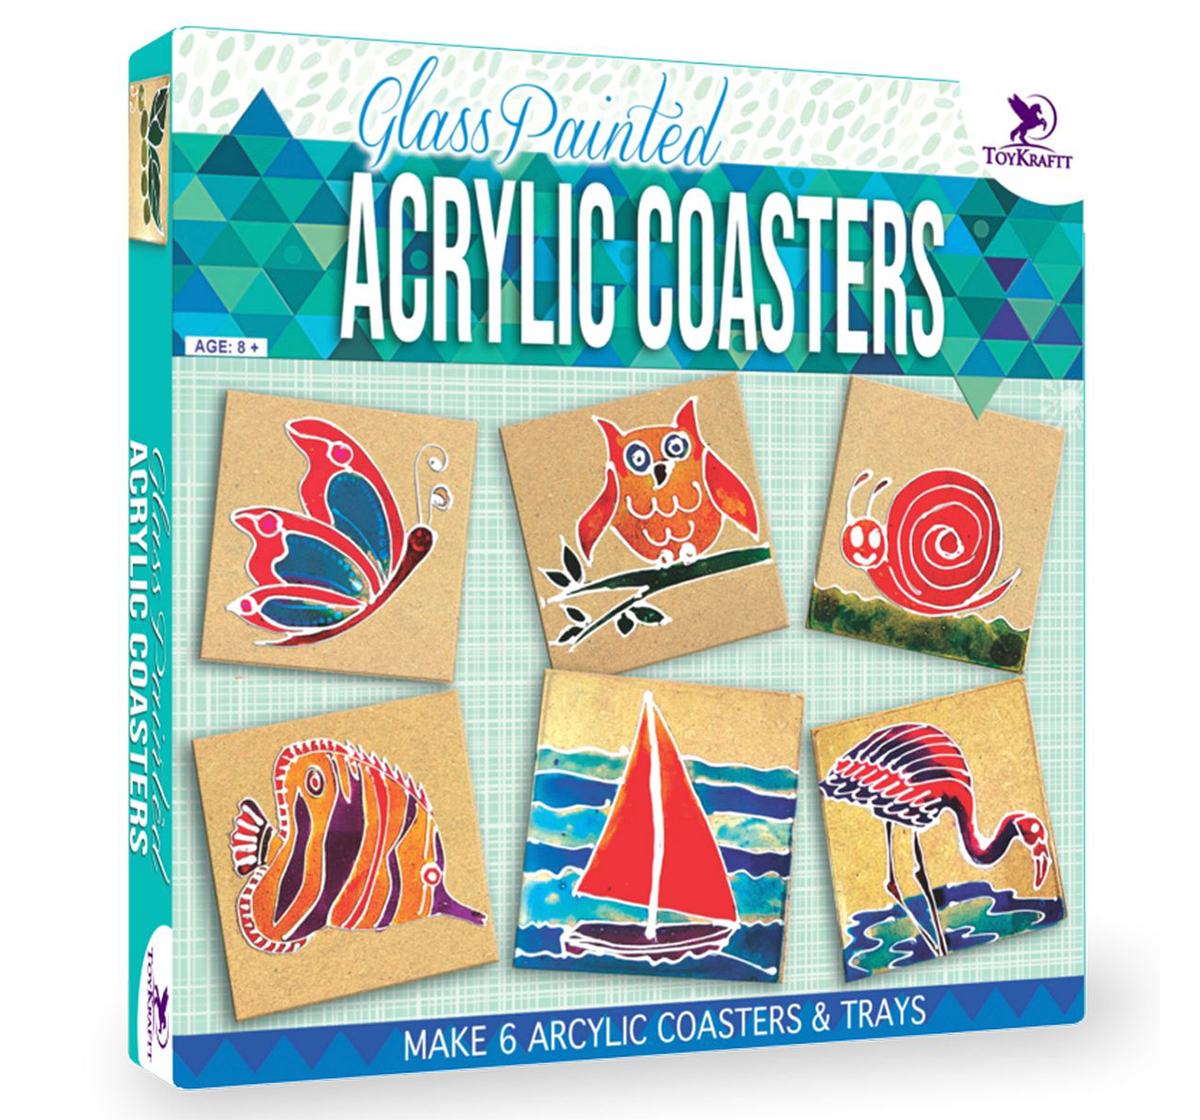 Toy Kraft | Toy Kraft Glass Painted - Acrylic Coasters, Multicolor, 8Y+